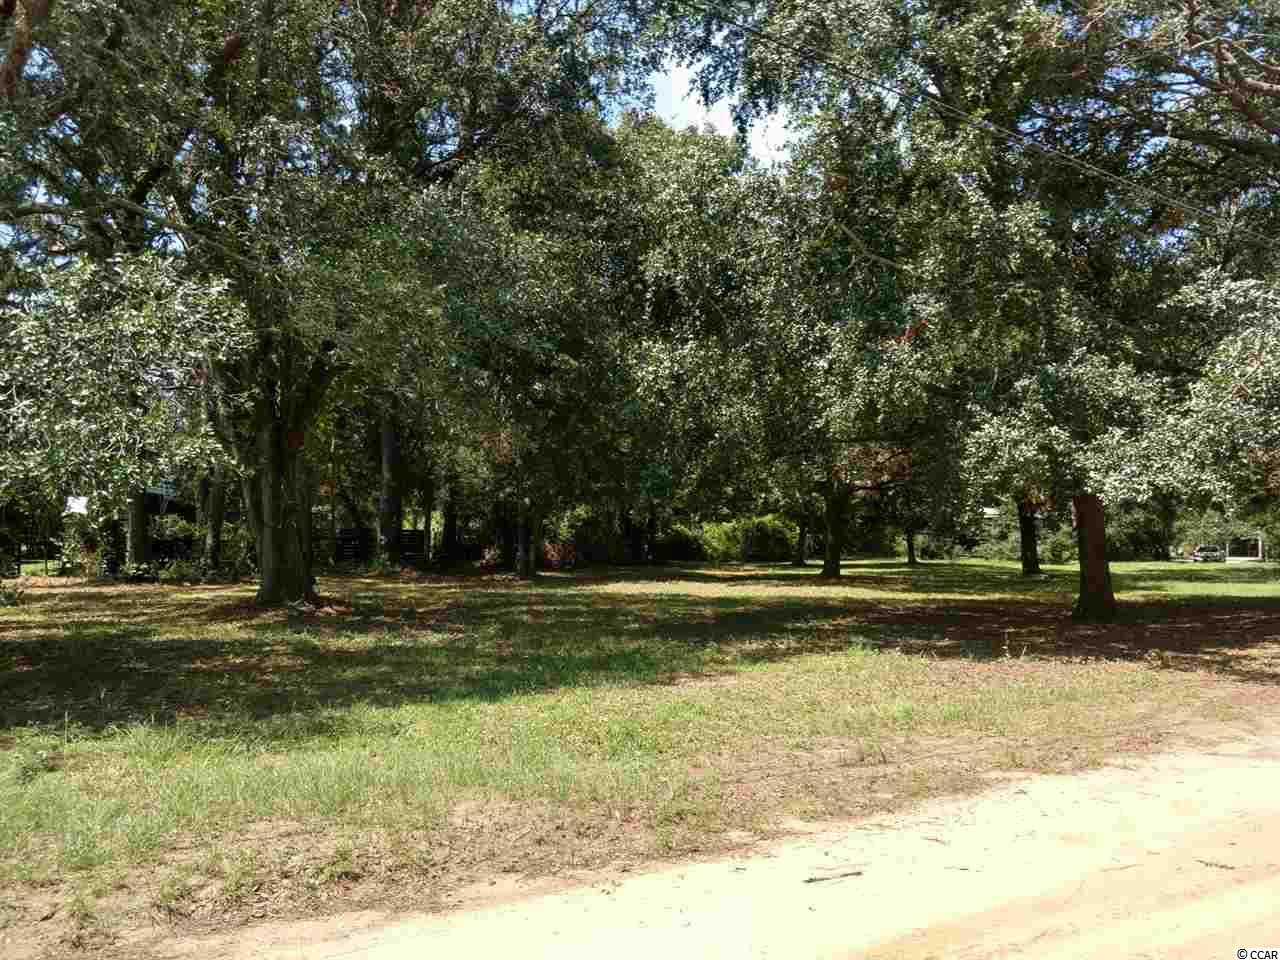 Don't miss out on one of the few lots left in Litchfield east of Hwy. 17 & your chance to view beautiful marsh views to ocean of the Hammock Coast! If you are looking for a building lot directly across from marshfront land at sought after Pawleys Island, you've found it!! One of the few remaining lots in the Litchfield Channel Bluff subdivision east of Ocean highway/Highway 17. Oversized lot with beautiful historic live oaks & scenic marsh views of Creek & Ocean. Close to fine dining,  schools , shopping, medical facilities &  public beach access at South Litchfield beaches. No HOA!! ADJACENT LOT ALSO AVAILABLE FOR PURCHASE.  An old beach community feel yet only  a 10 minute drive up to Myrtle Beach & 70 miles to Charleston. Perfect for permanent , rental or vacation home.